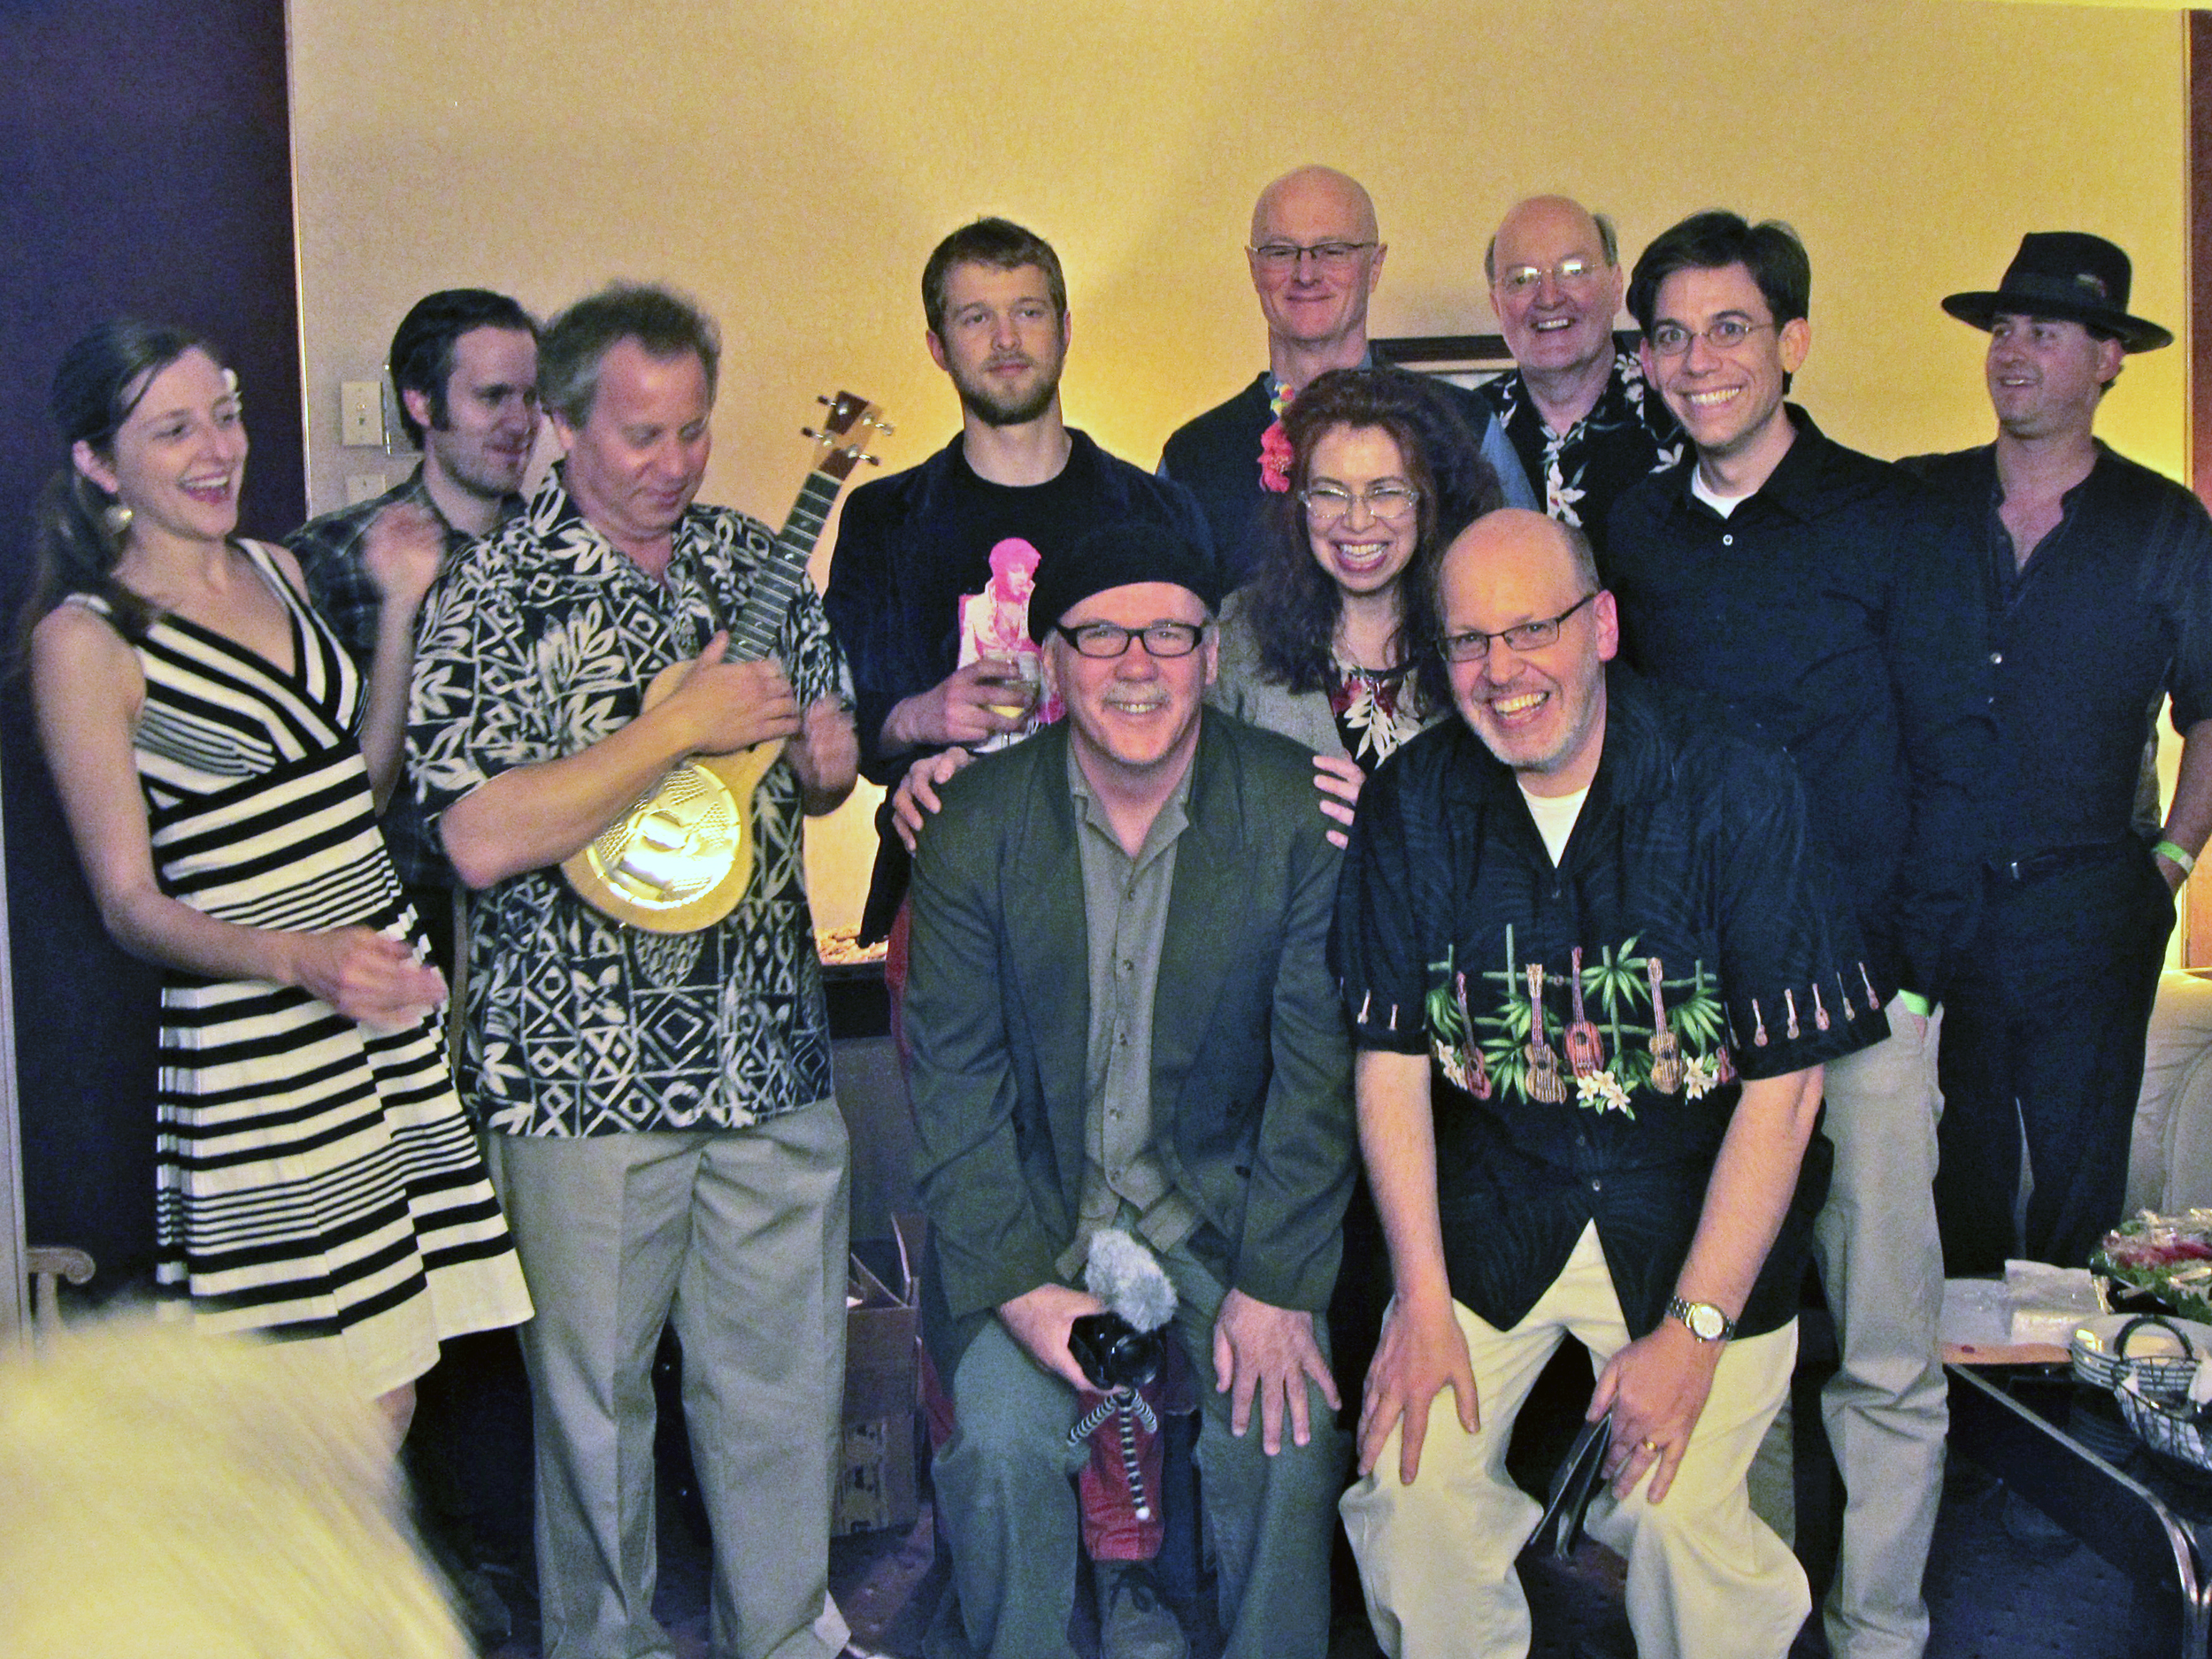 Backstage at the 2012 Reno Ukulele Festival  – (L to R) Sarah Maisel, Aaron Keim, Gerald Ross, Neil  McCormick, Jim D'Ville, Craig Brandau, Cali Rose, Rich Dann, Doug Reynolds, Paul Hemmings, and Lil Rev.